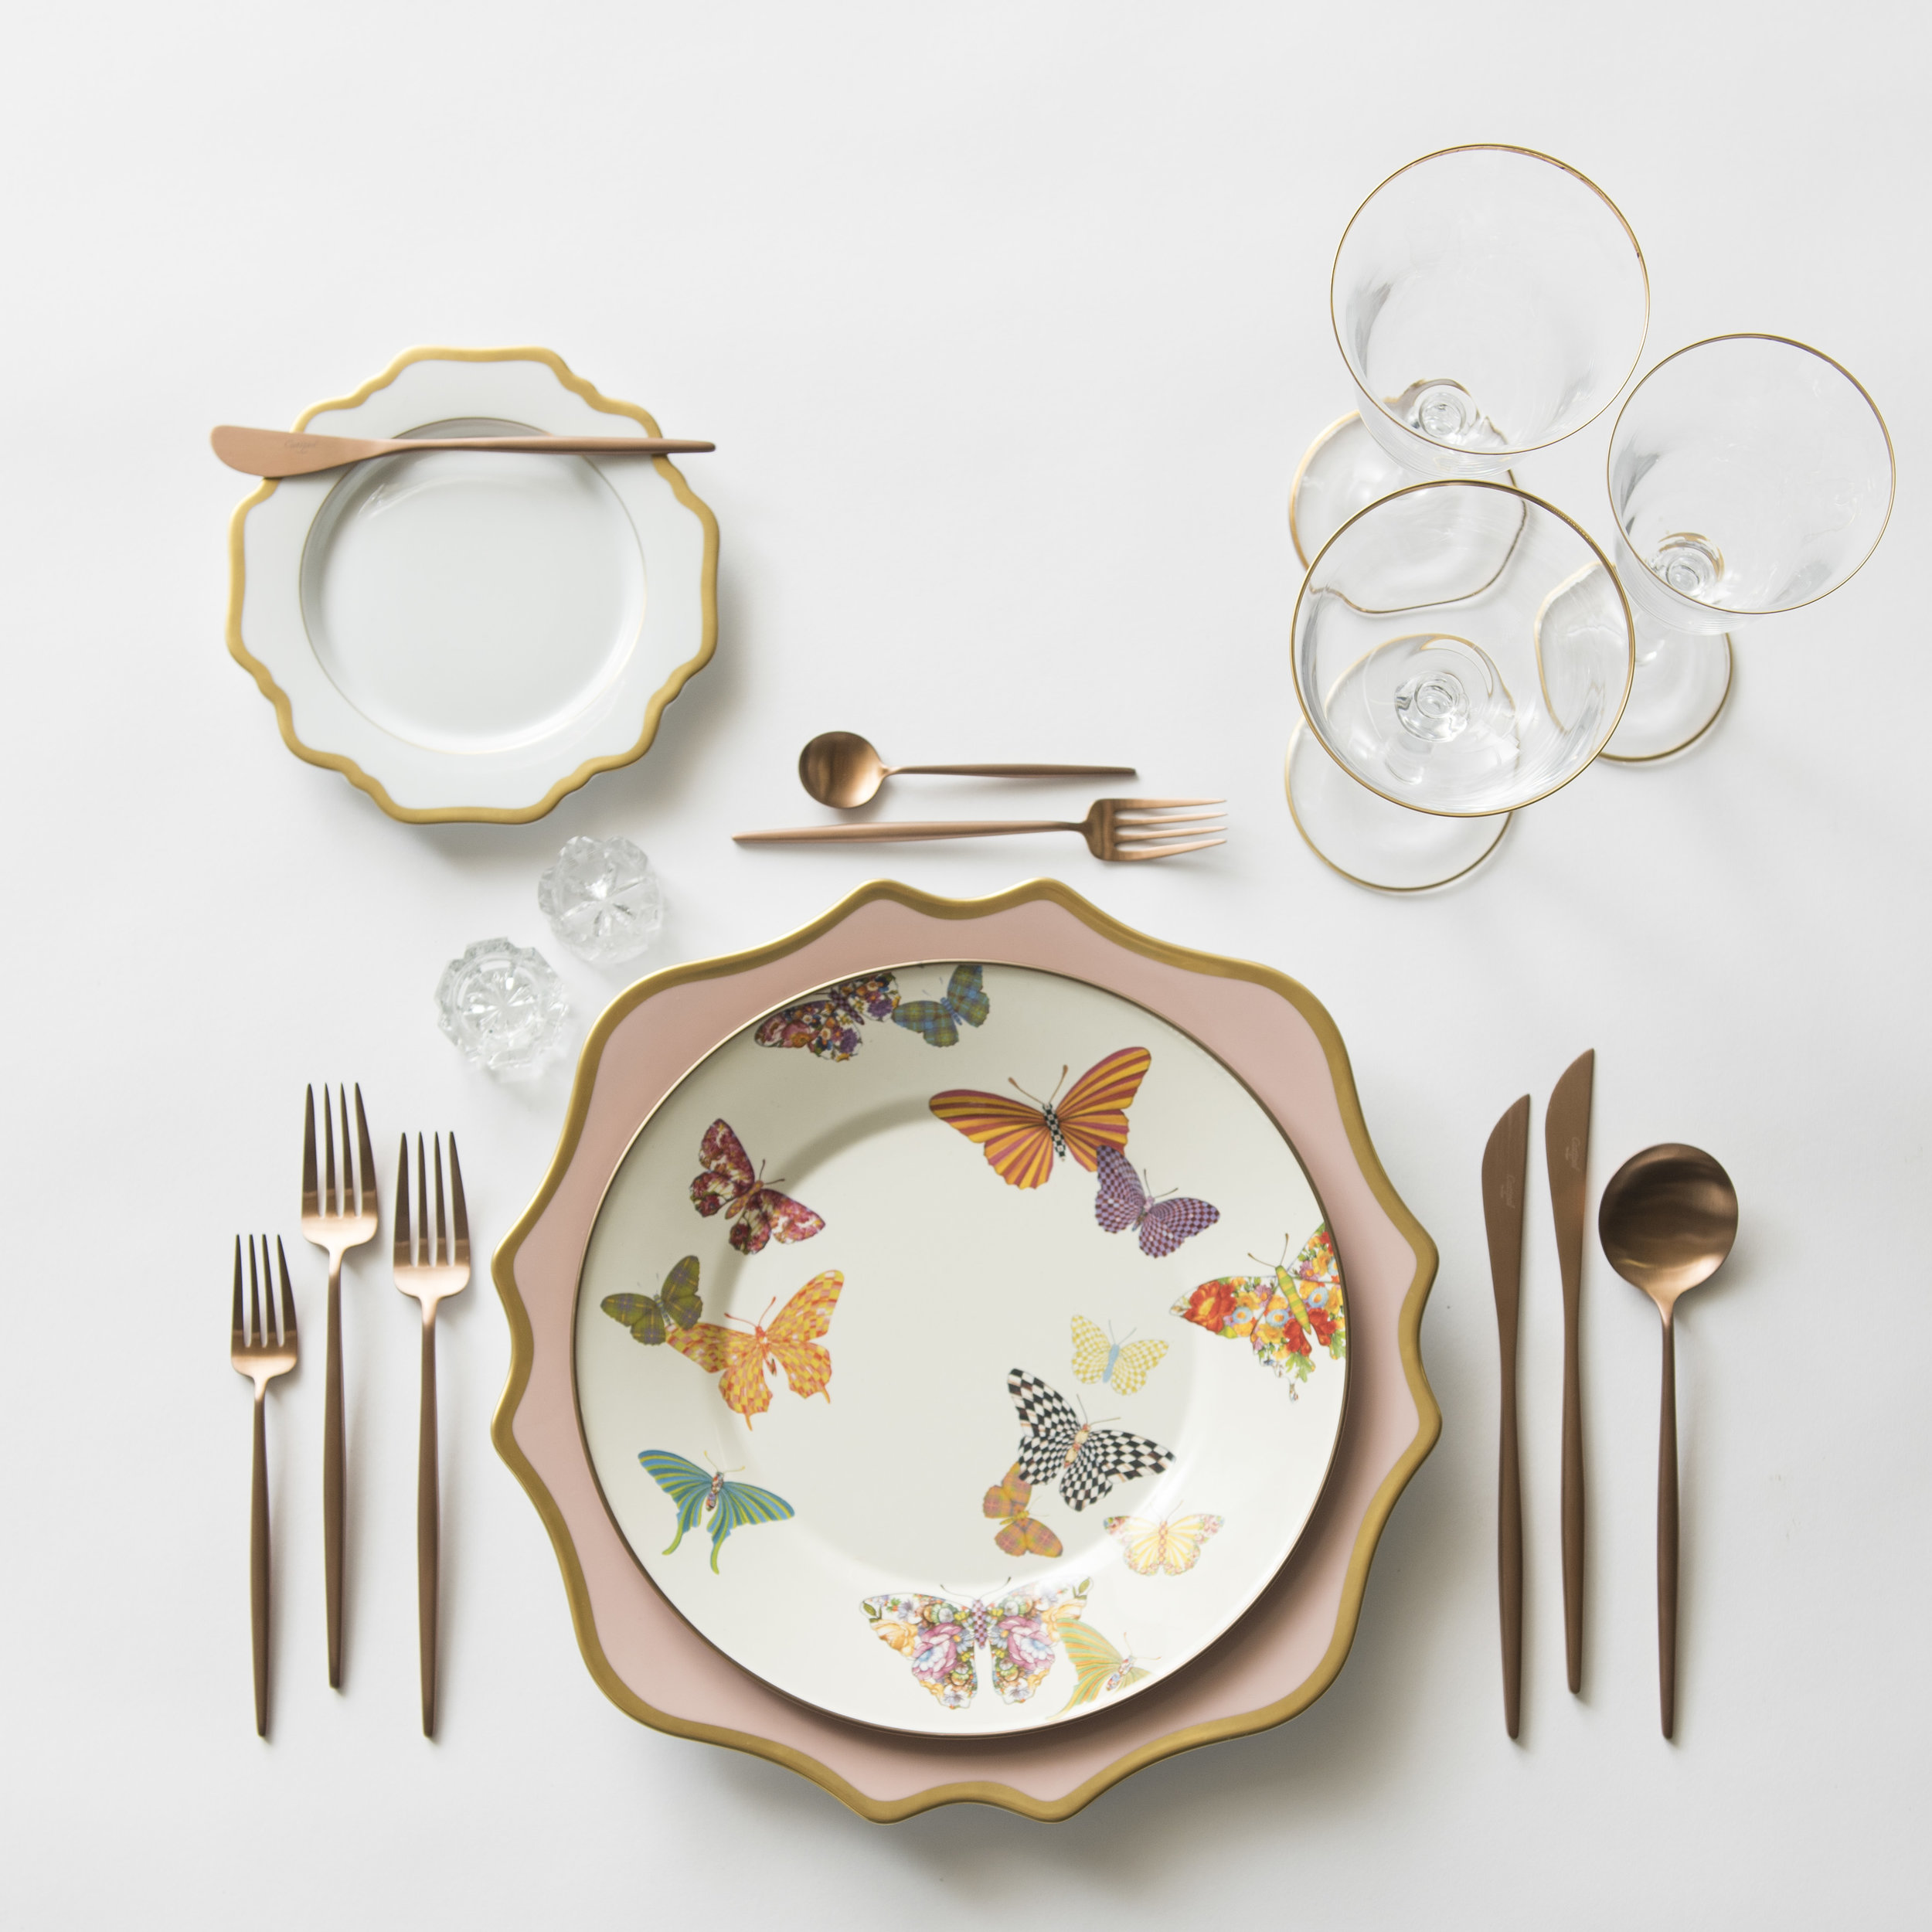 RENT: Anna Weatherley Chargers in Desert Rose/Gold + MacKenzie-Childs Butterfly Garden Collection + Anna Weatherley Dinnerware in White/Gold + Moon Flatware in Brushed Rose Gold + Chloe 24k Gold Rimmed Stemware + Antique Crystal Salt Cellars   SHOP: Anna Weatherley Dinnerware in White/Gold + Moon Flatware in Brushed Rose Gold + Chloe 24k Gold Rimmed Stemware